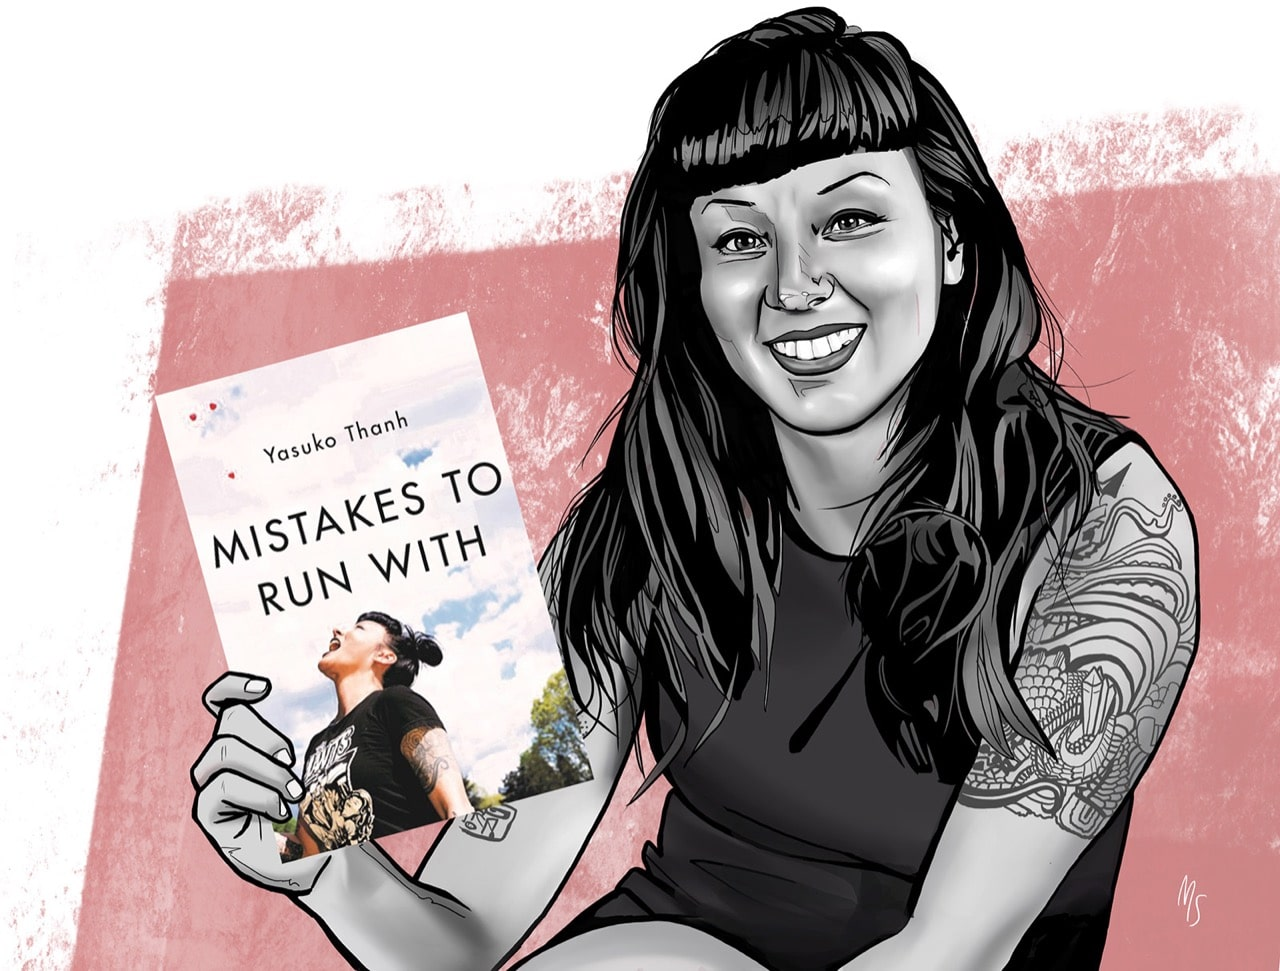 Mistakes To Run With by Yasuko Thanh.